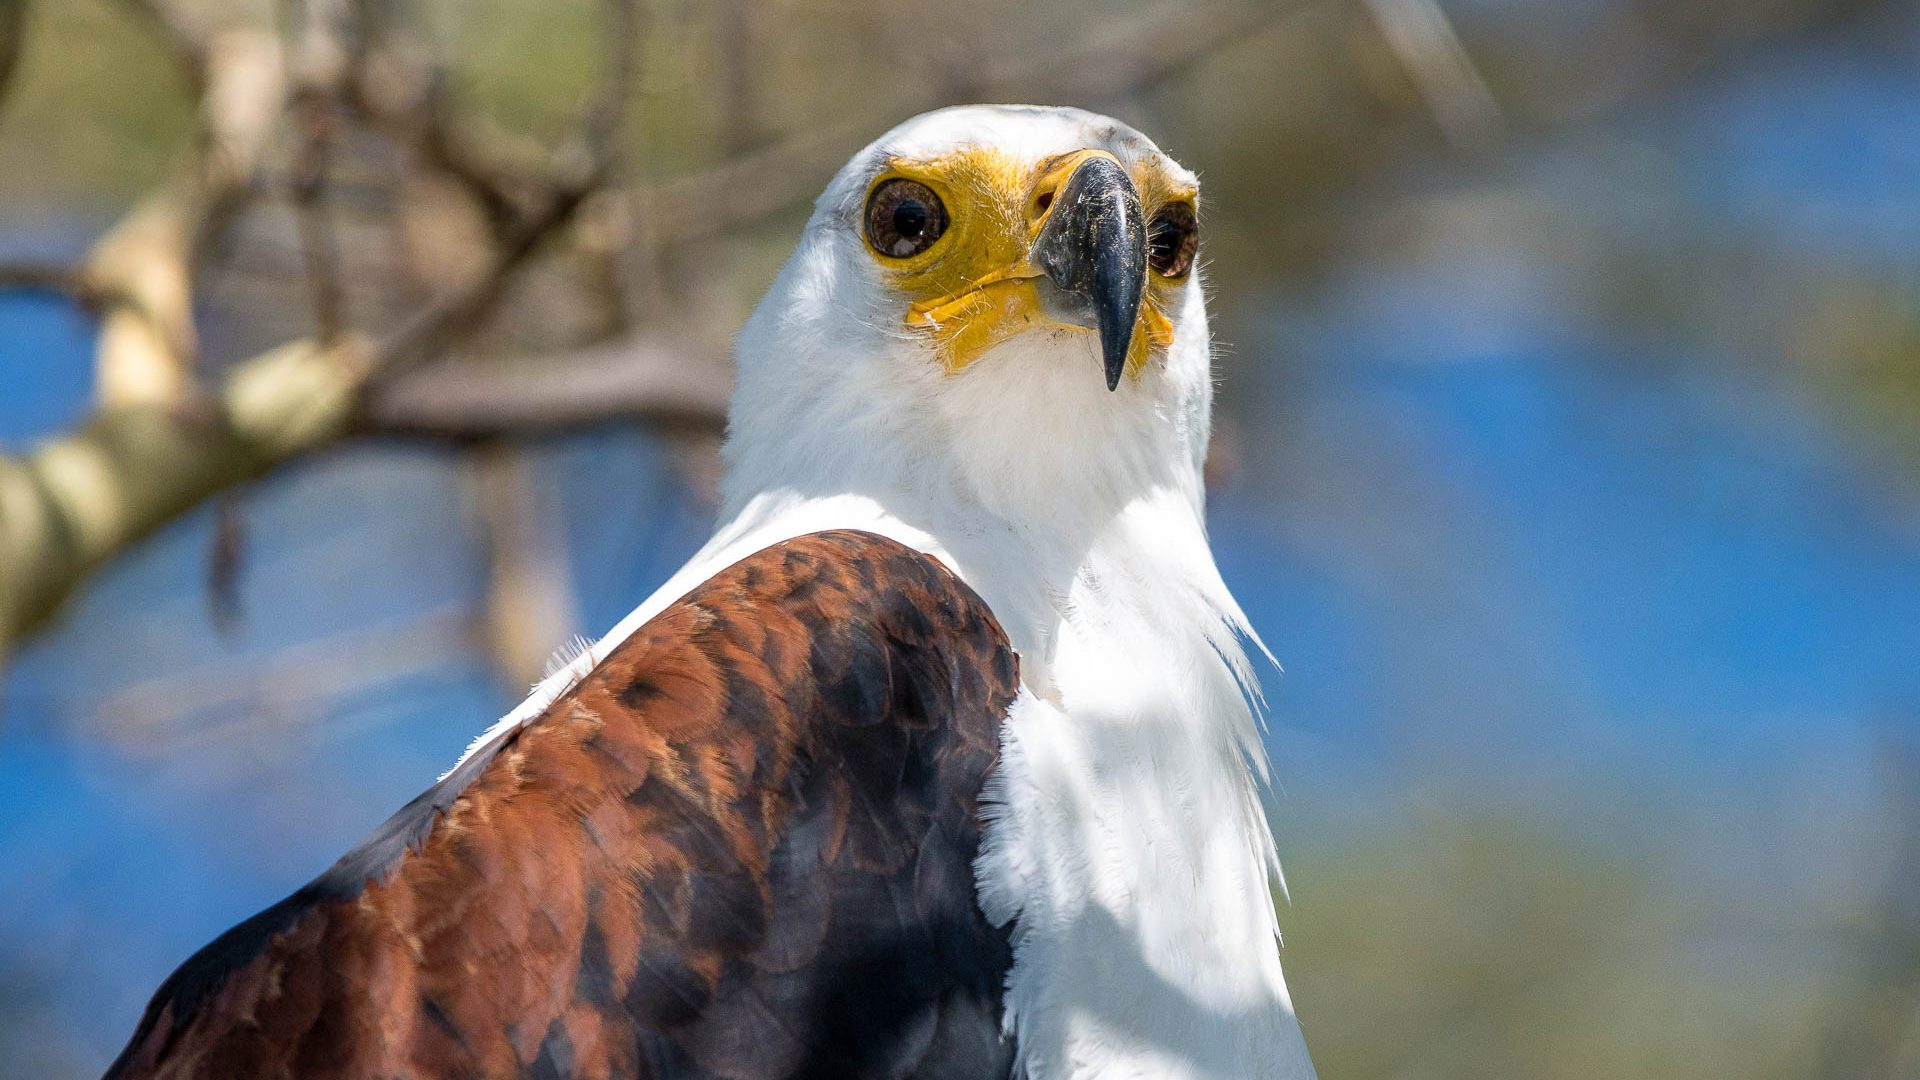 The white-headed fish eagle, Malawi's national bird, spotted in Kuthengo camp in Liwonde National Park, Malawi.